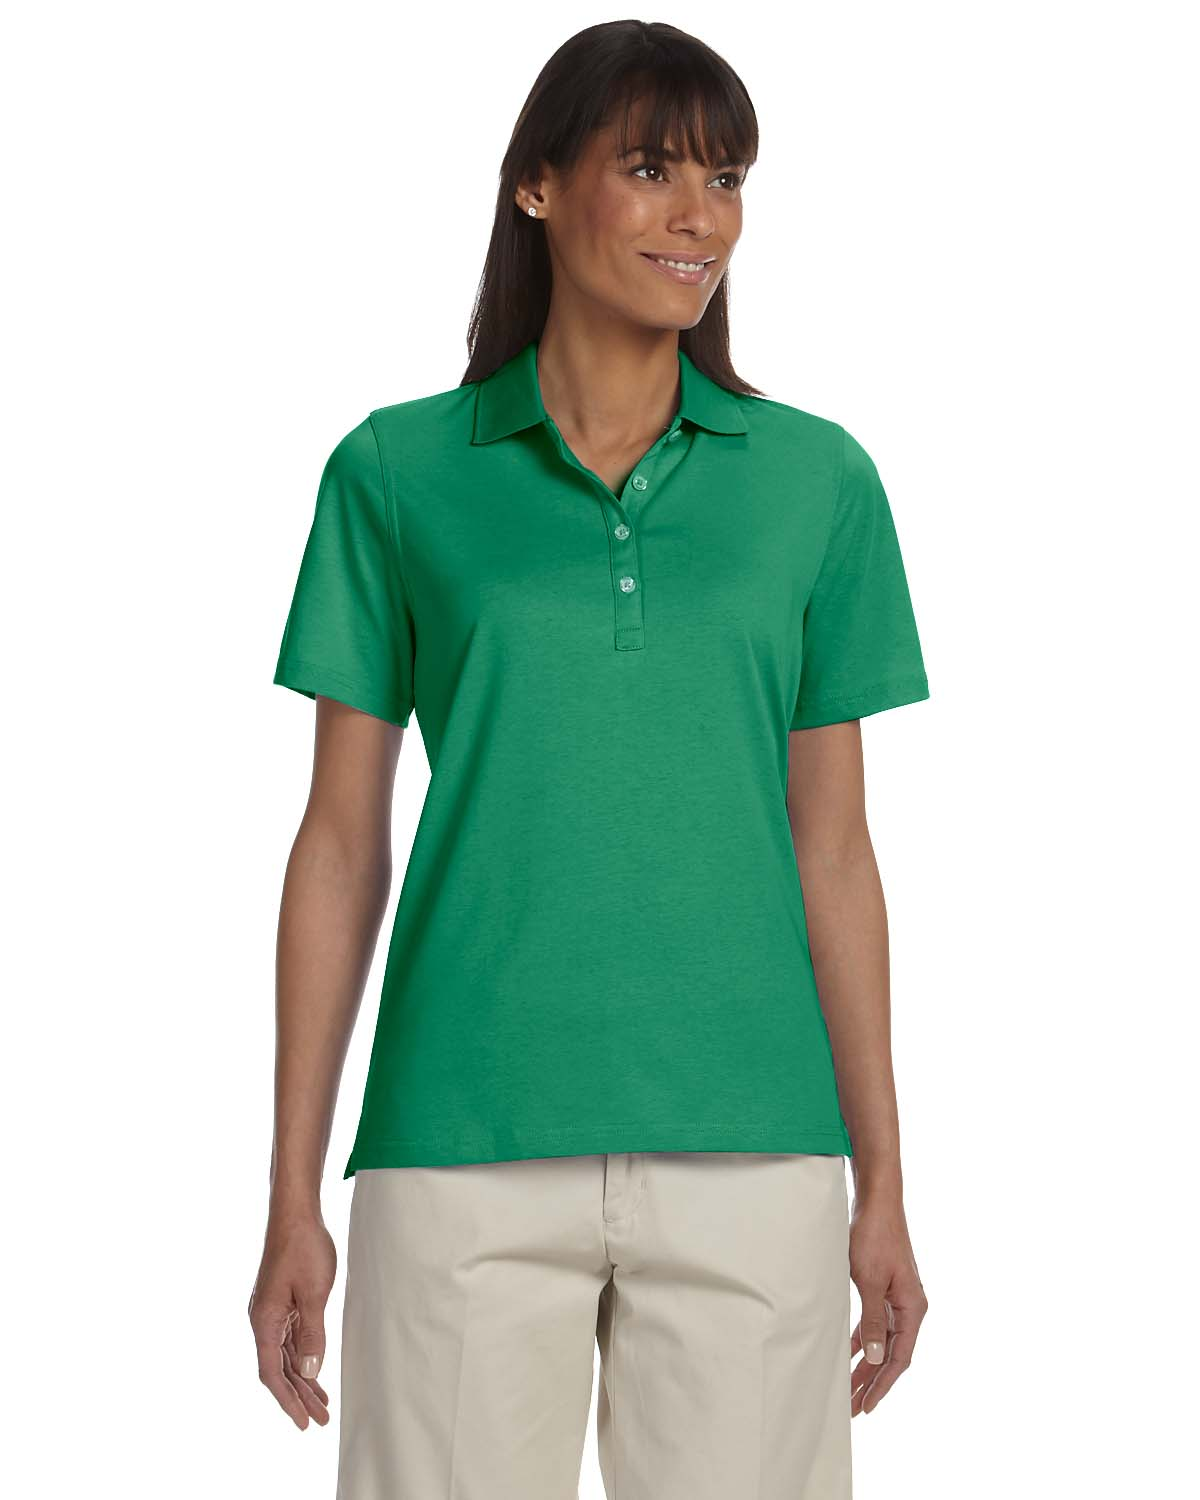 Ashworth-Women-039-s-High-Twist-Cotton-Tech-Polo-1147C-S-2XL thumbnail 8